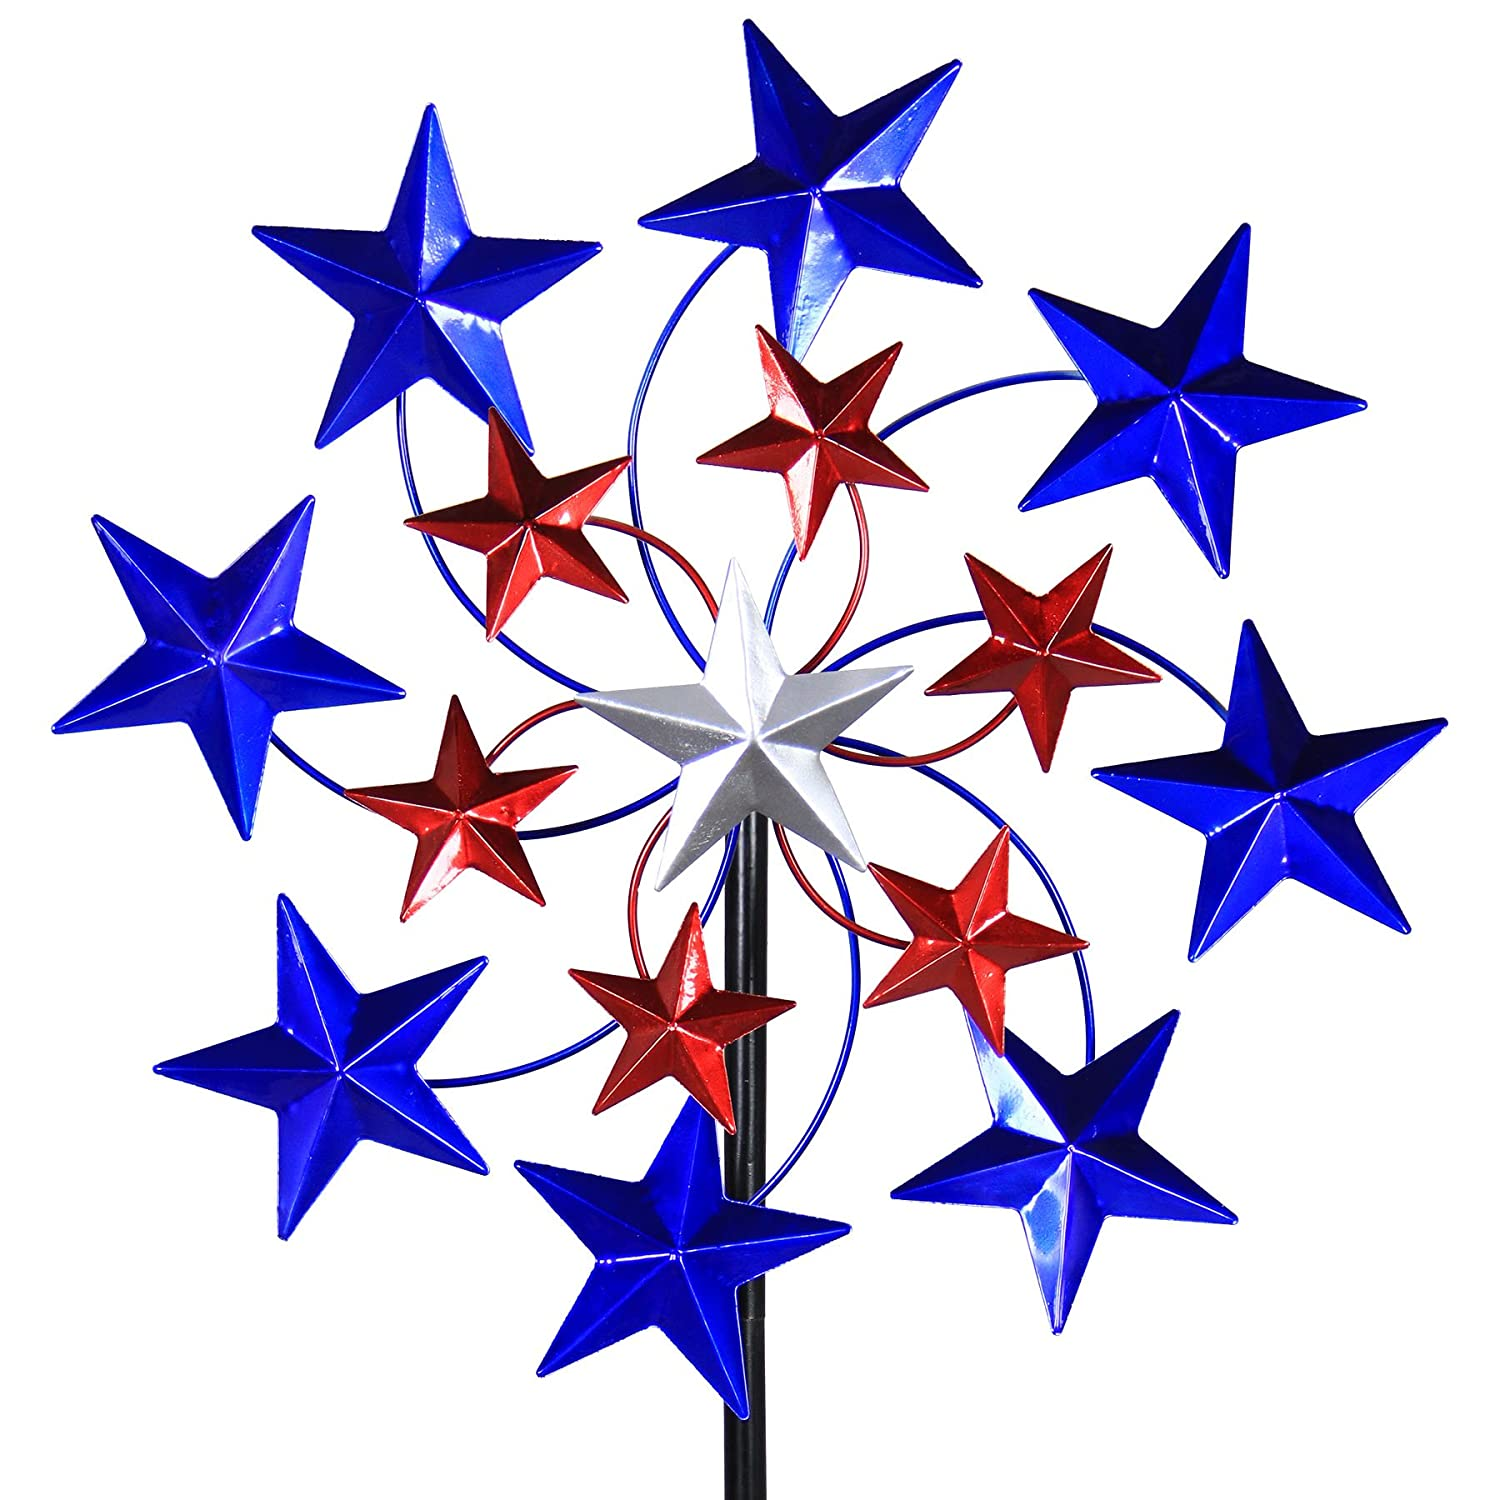 "Exhart Star Spangled Wind Spinner - Pinwheels Outdoor Decor w/American Themed Metal Design - Kinetic Art Garden Spinner with Blue, Red, and White Stars Spinning Blades, 20"" L x 7"" W x 83"" H"